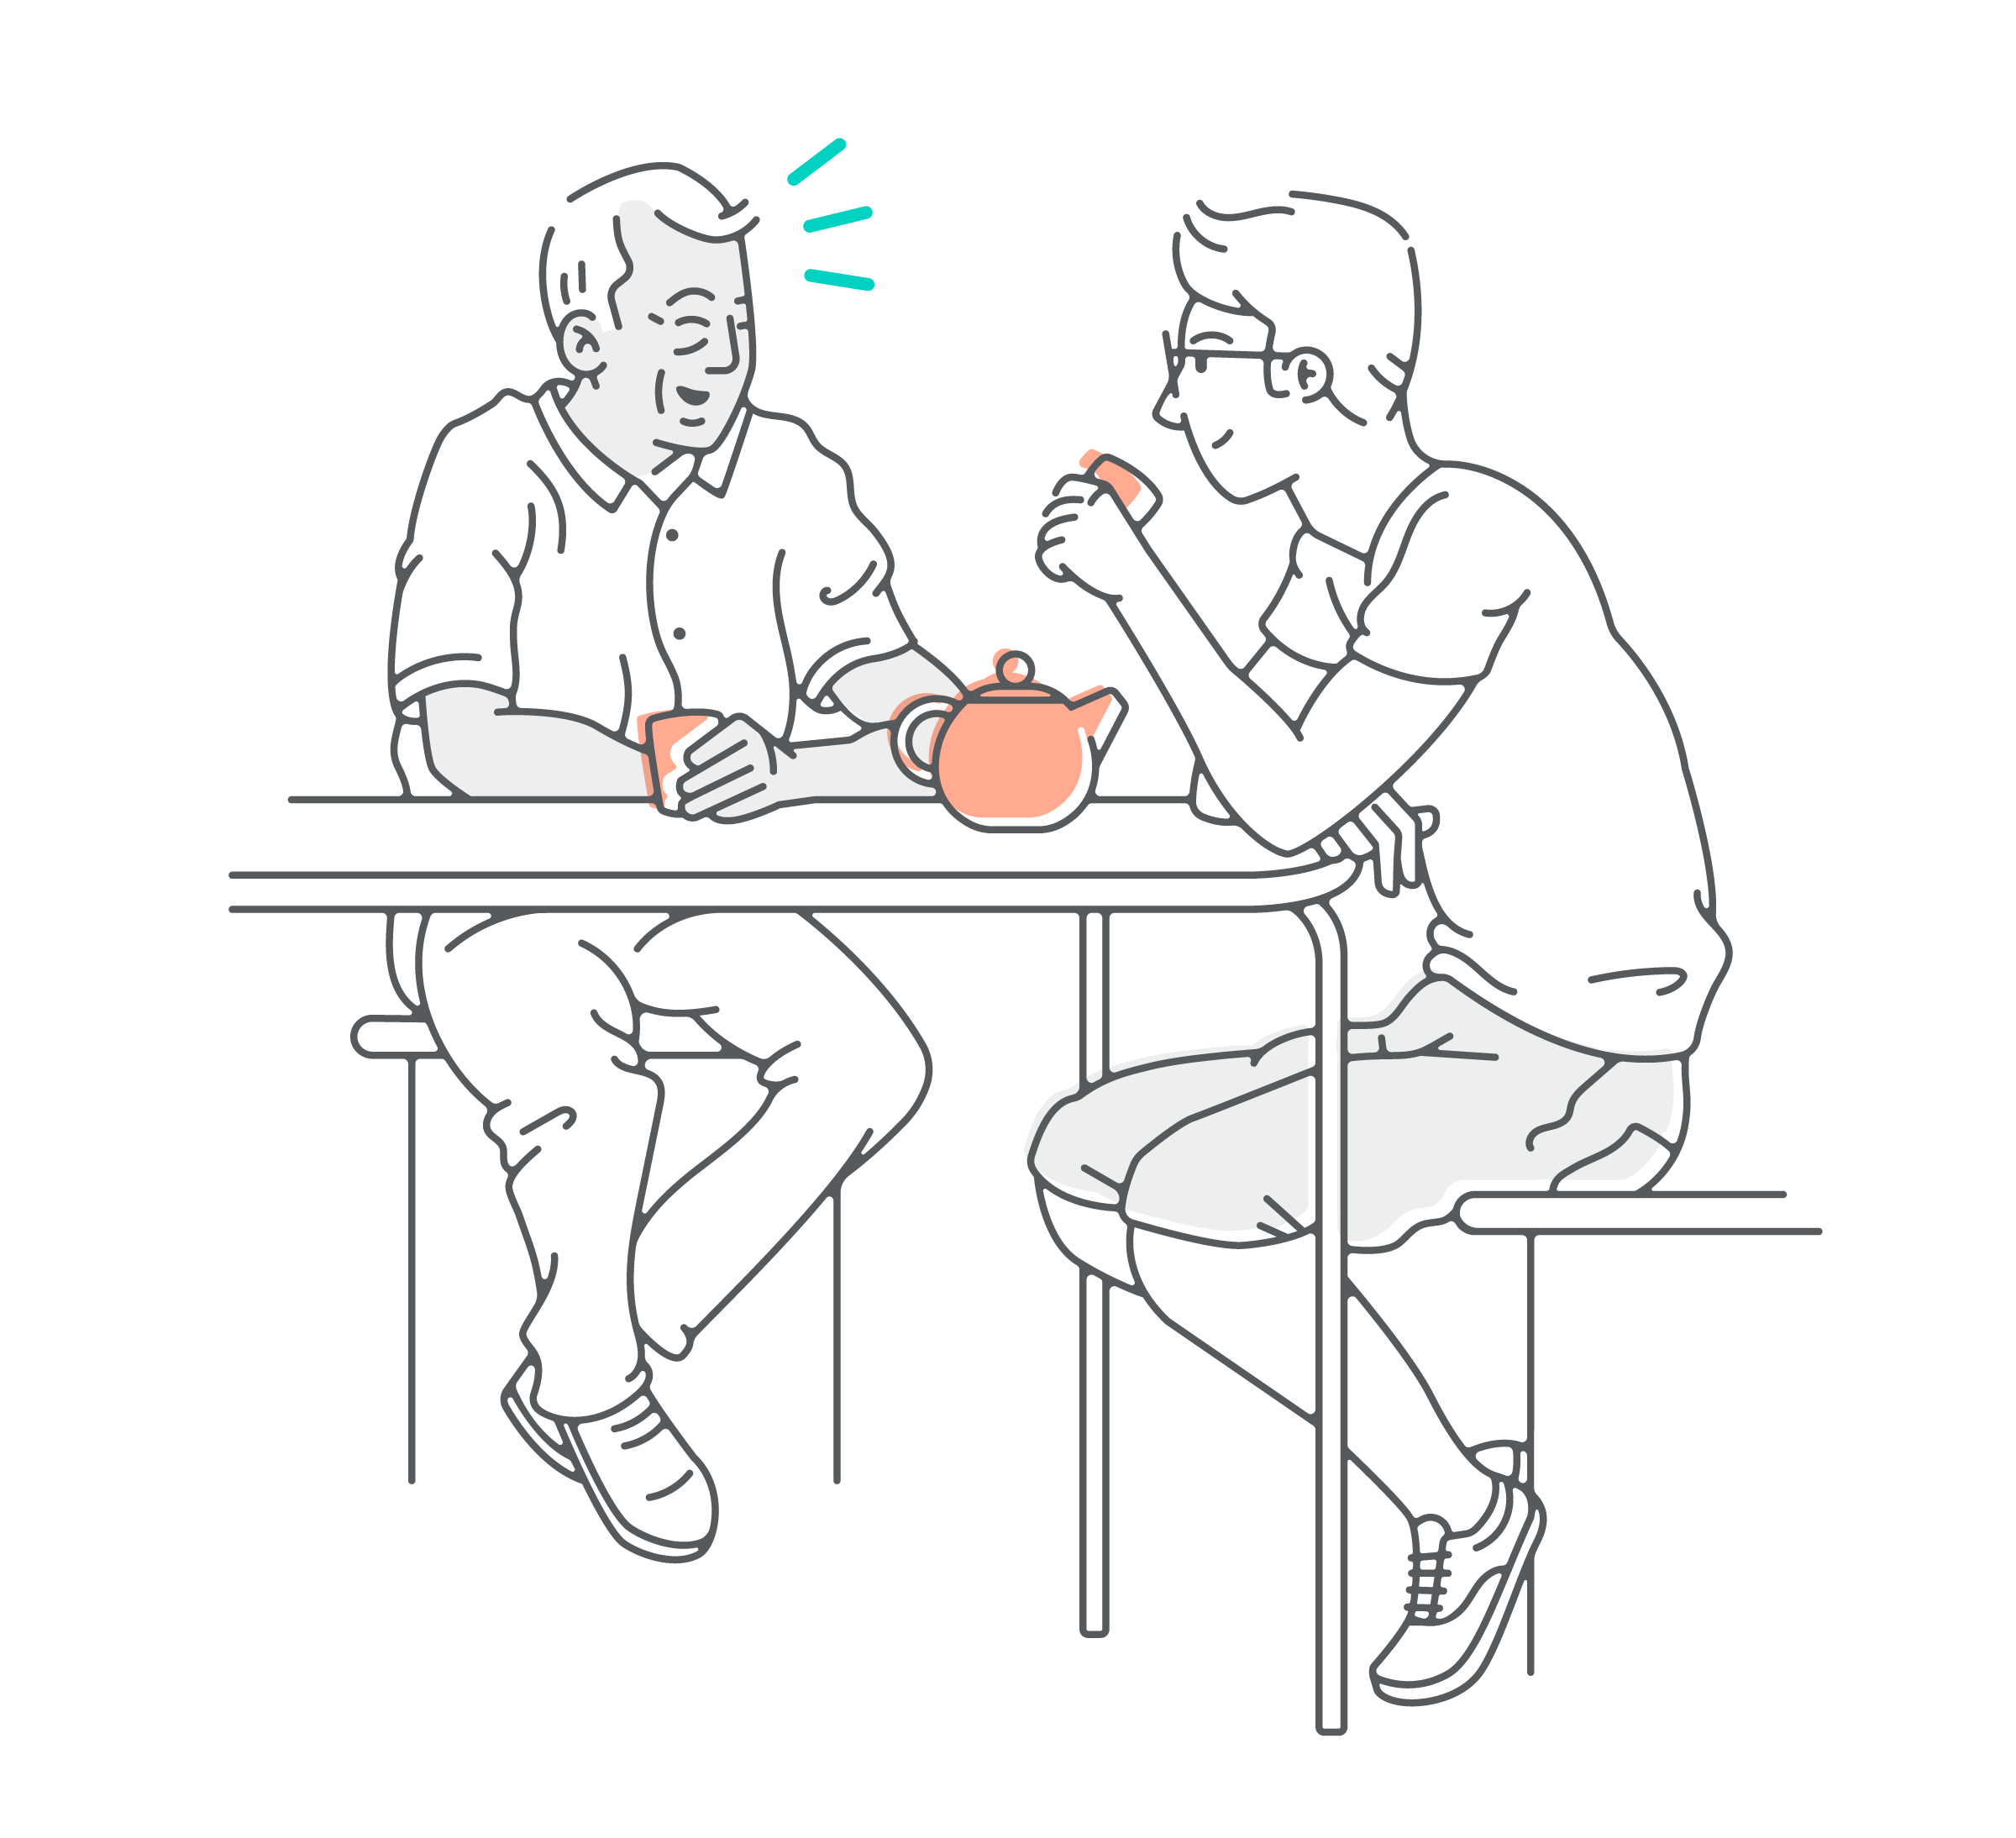 airbnb-illustrations-02.png